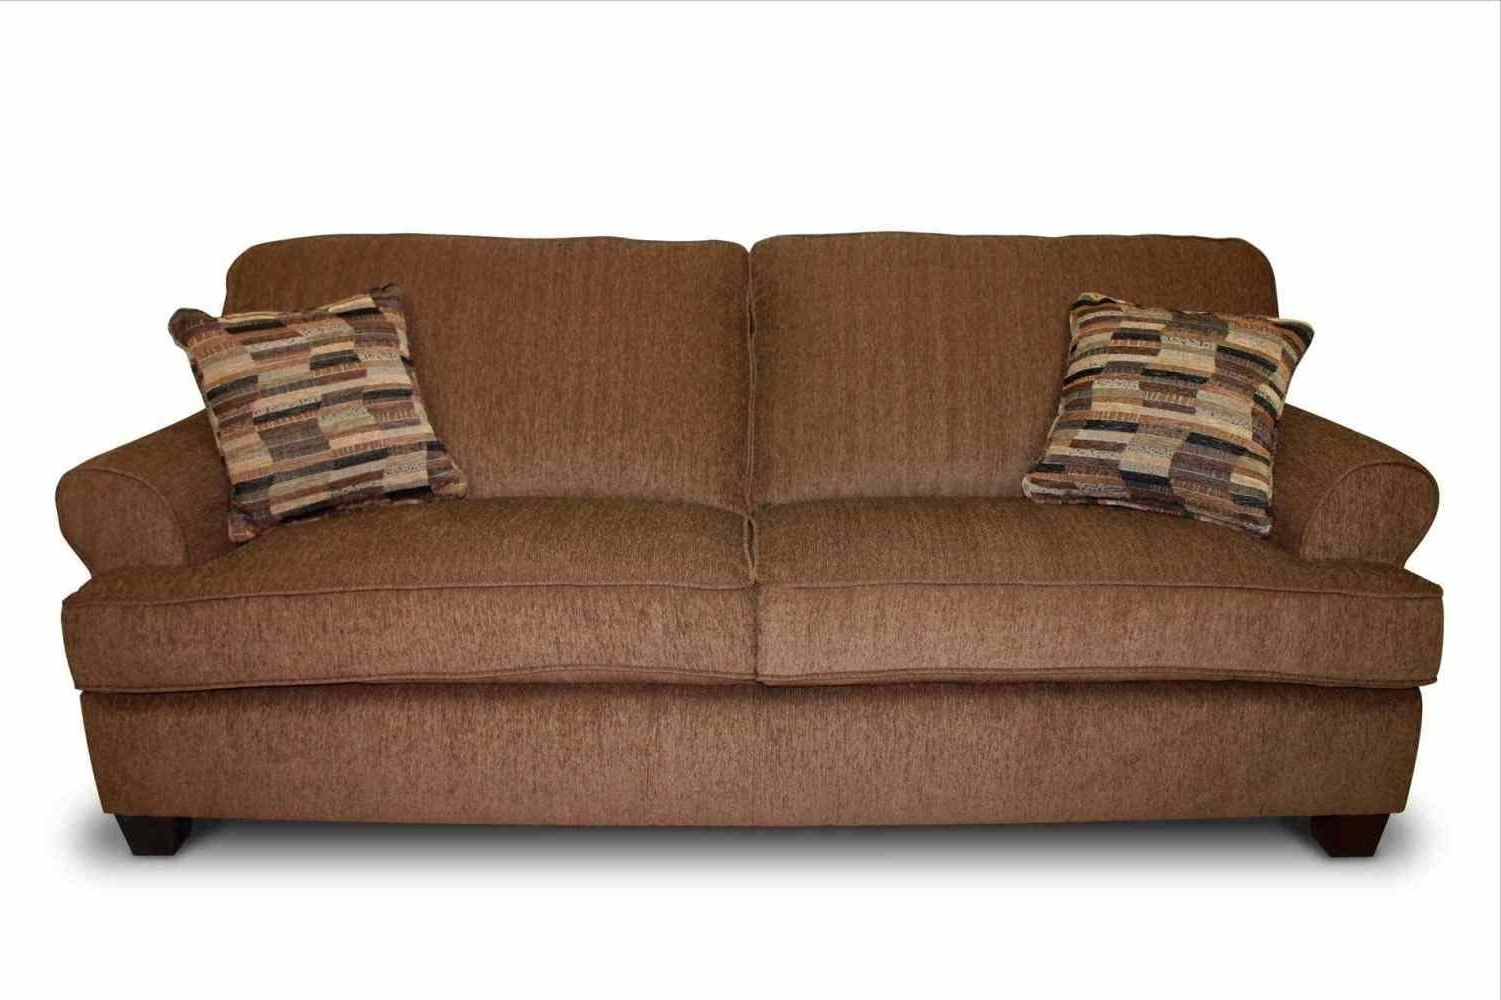 Couch : In Modern Sofa Ideas With Chair Superb Leather Swivel Grey Within Most Current Snuggle Sofas (View 17 of 20)